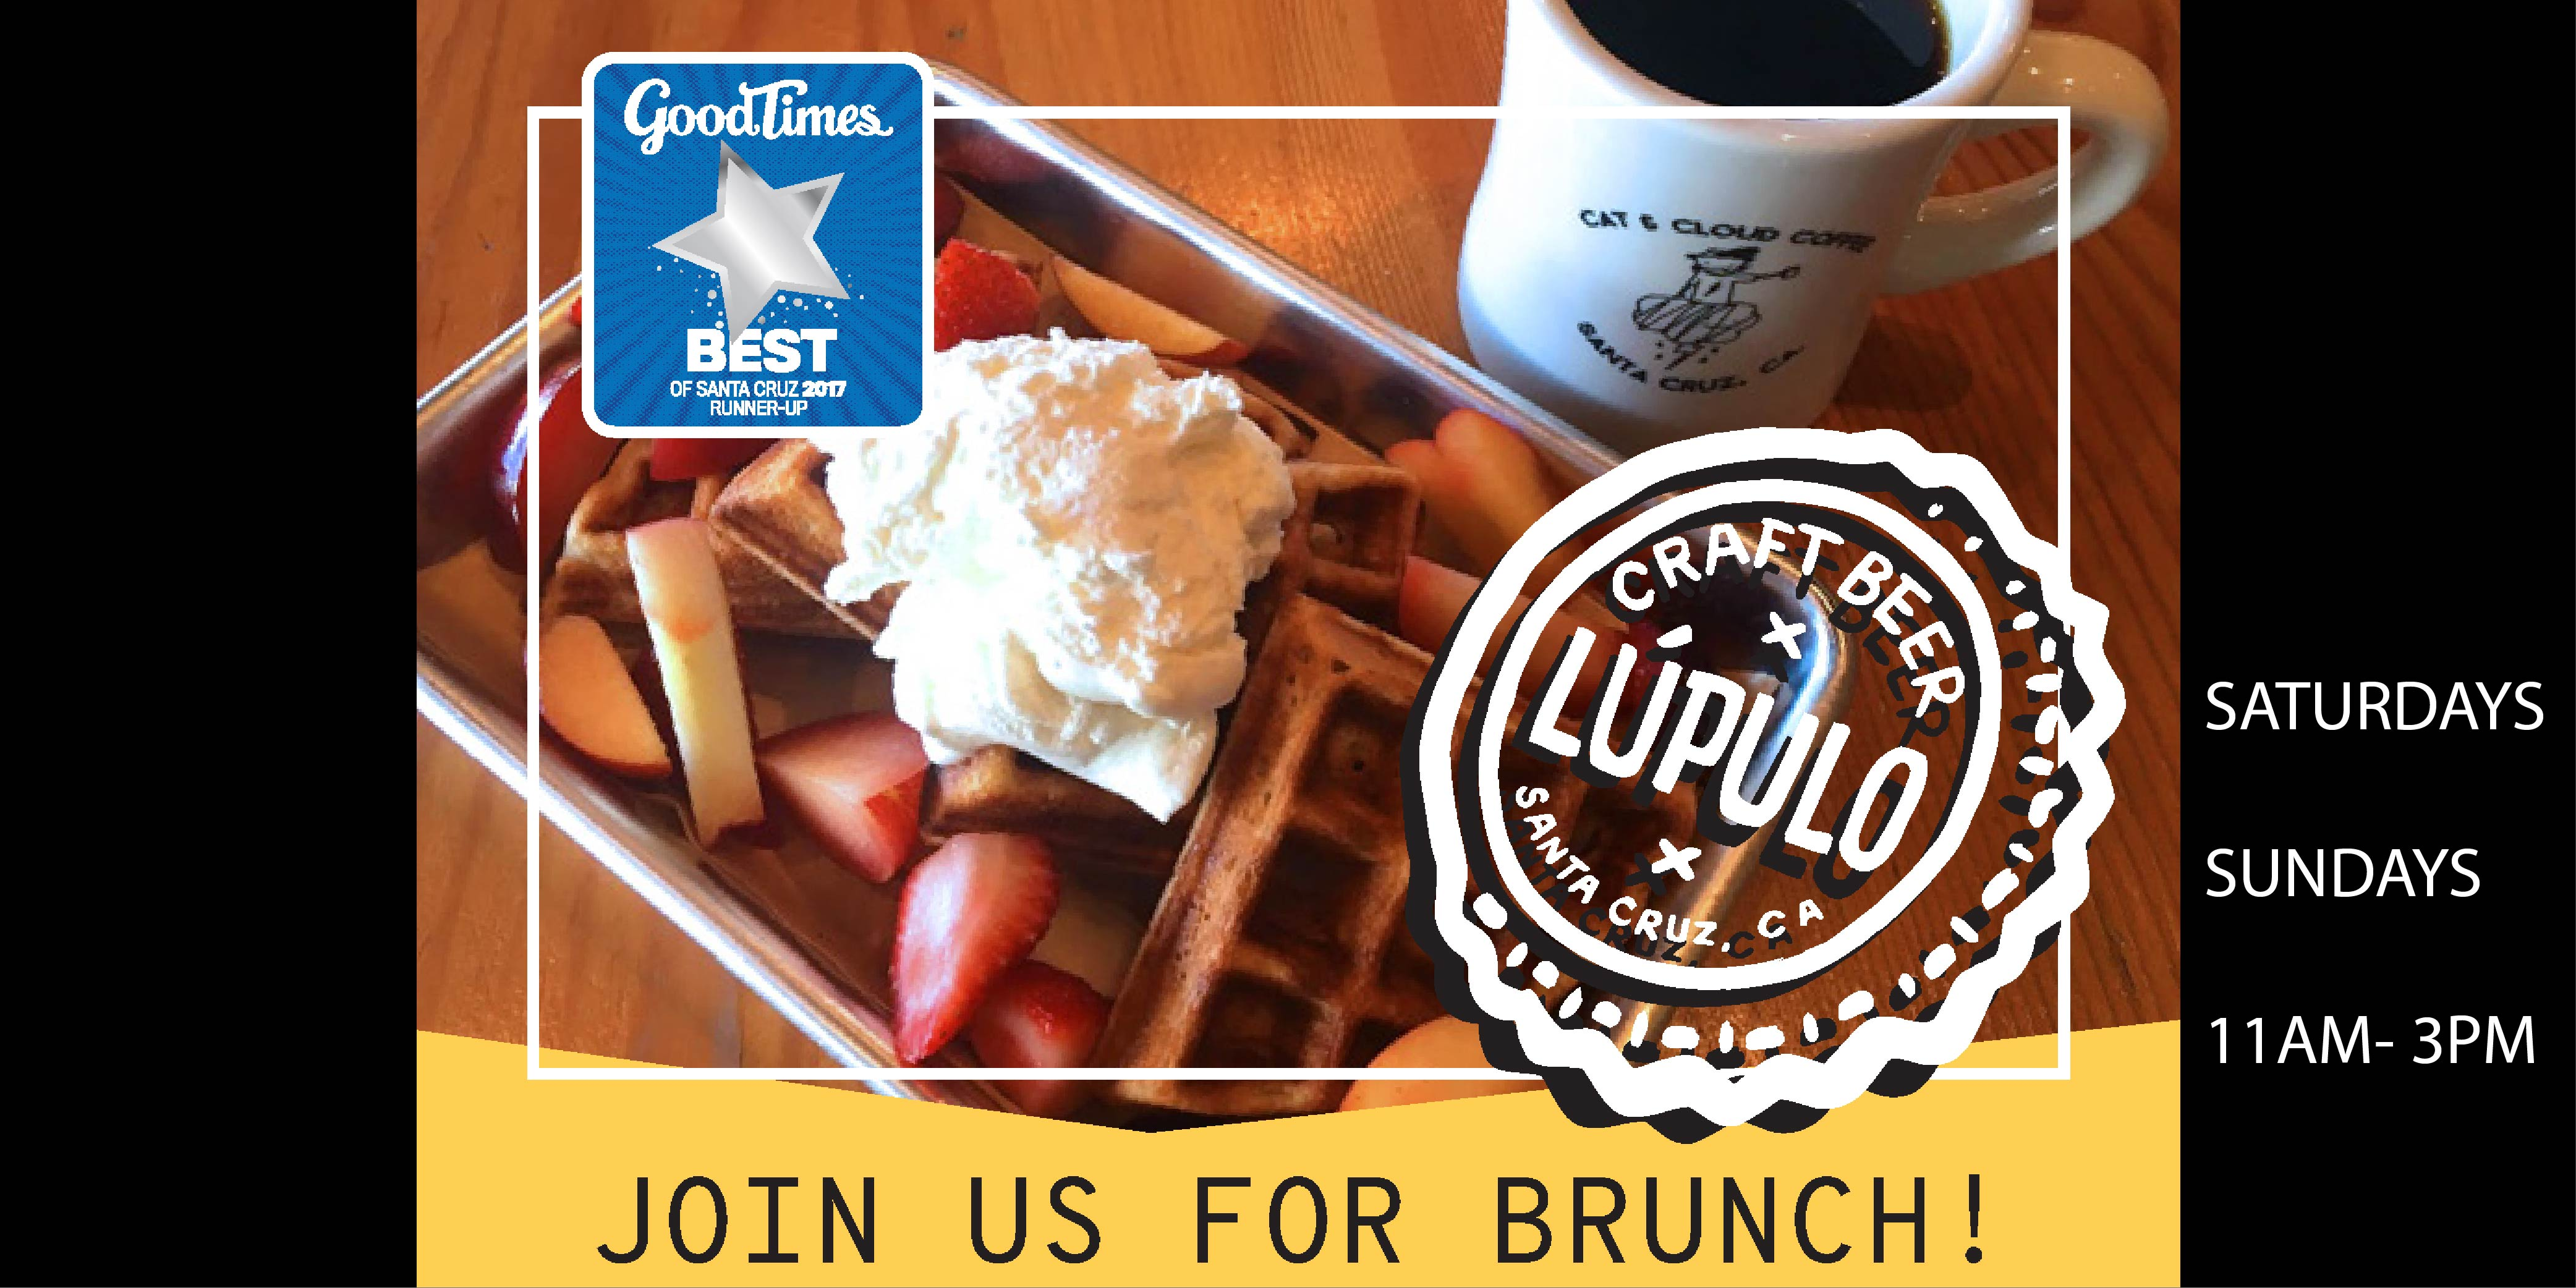 Sourdough Rye Waffle with whipped cream and fruit along with local coffee from Cat and Cloud, available along with the rest of our brunch menu every Saturday and Sunday from 11am to 3pm